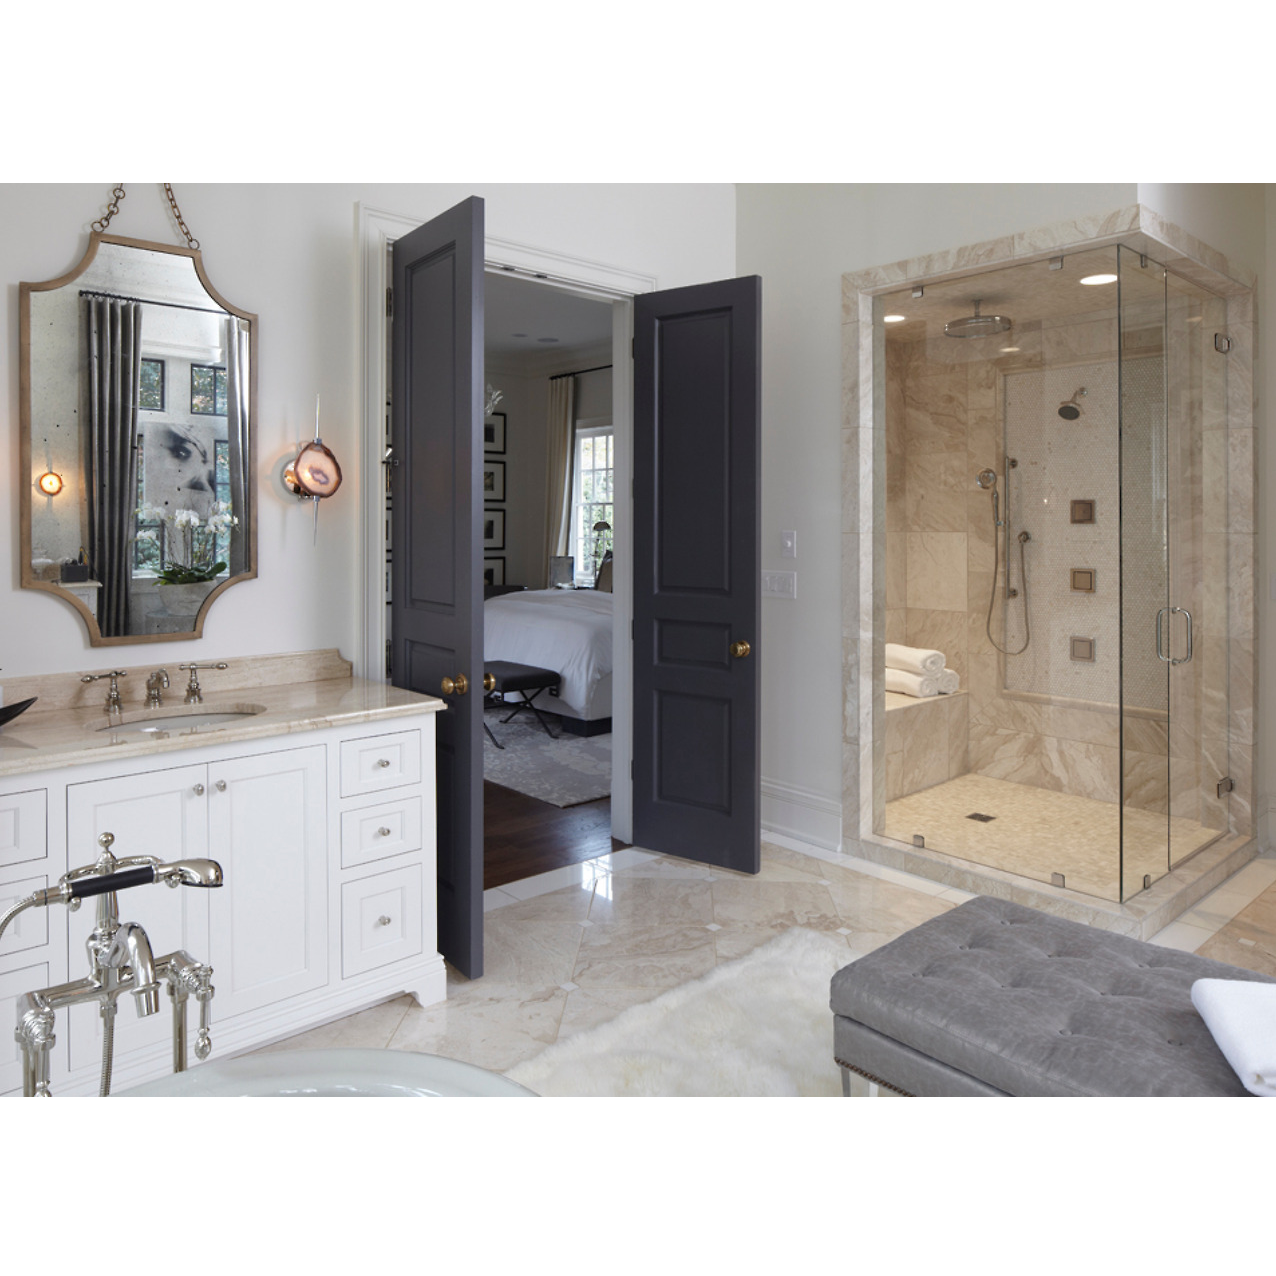 KOHLER Bathroom & Kitchen Products At Bay State Design